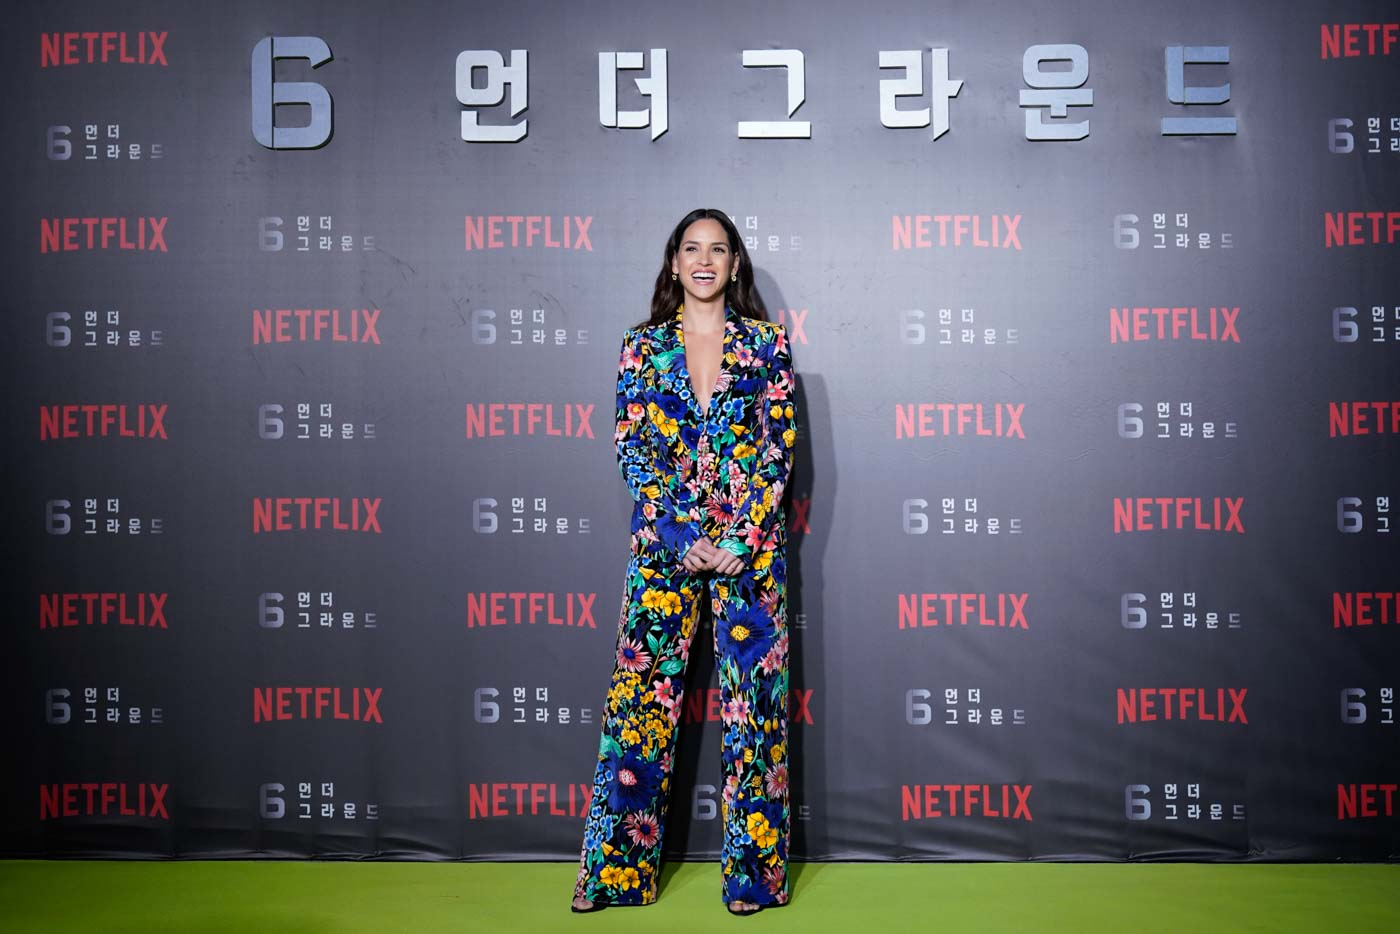 Enjoying Korea: Adria Arjona gives fans a bright smile despite the chilly weather in Seoul, South Korea at the world premiere of Netflix's '6 Underground' at Dongdaemun Design Plaza on December 02, 2019. Photo courtesy of Netflix